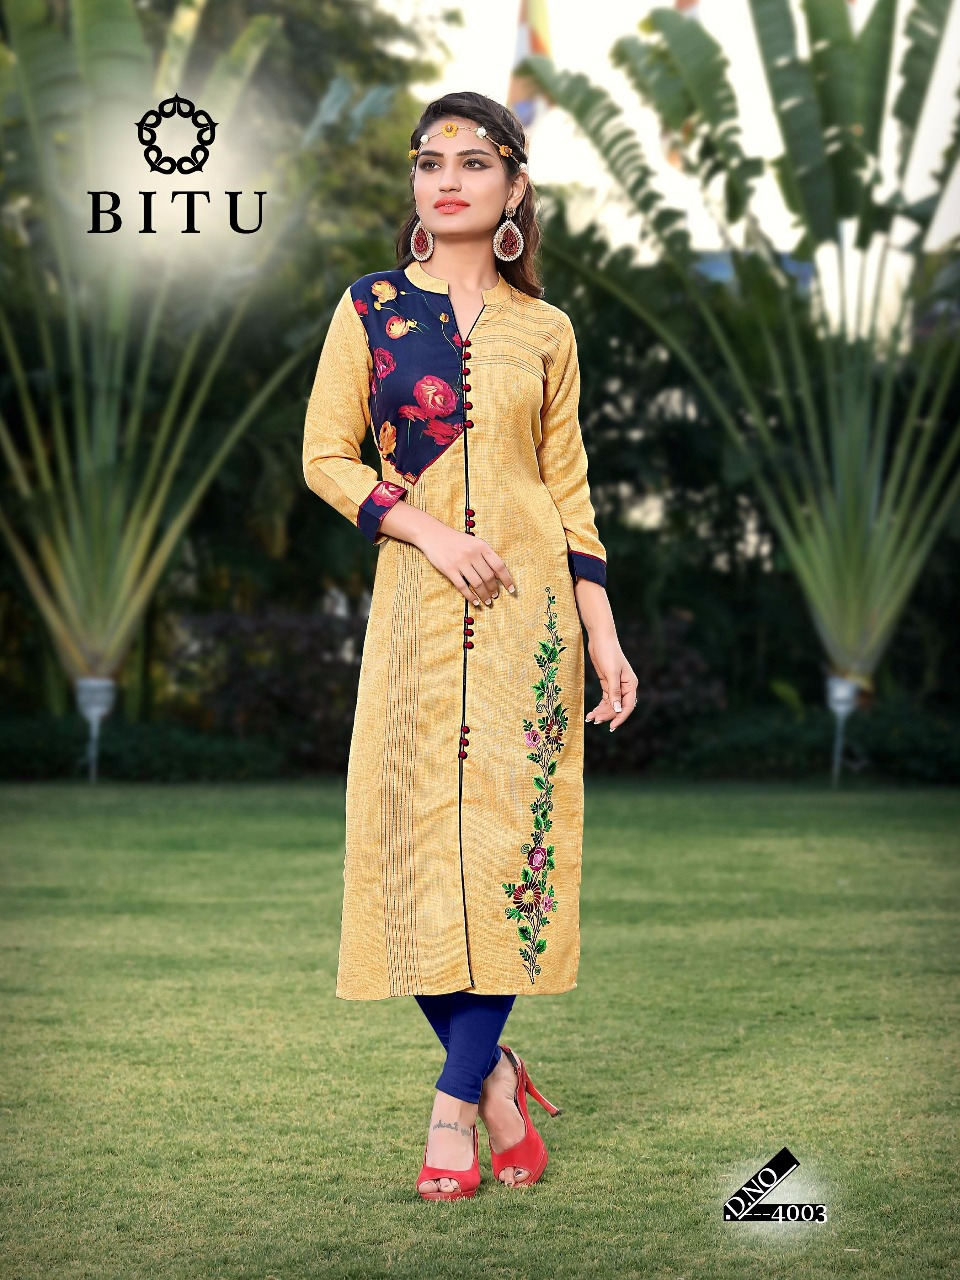 Bitu Rich Look 4003